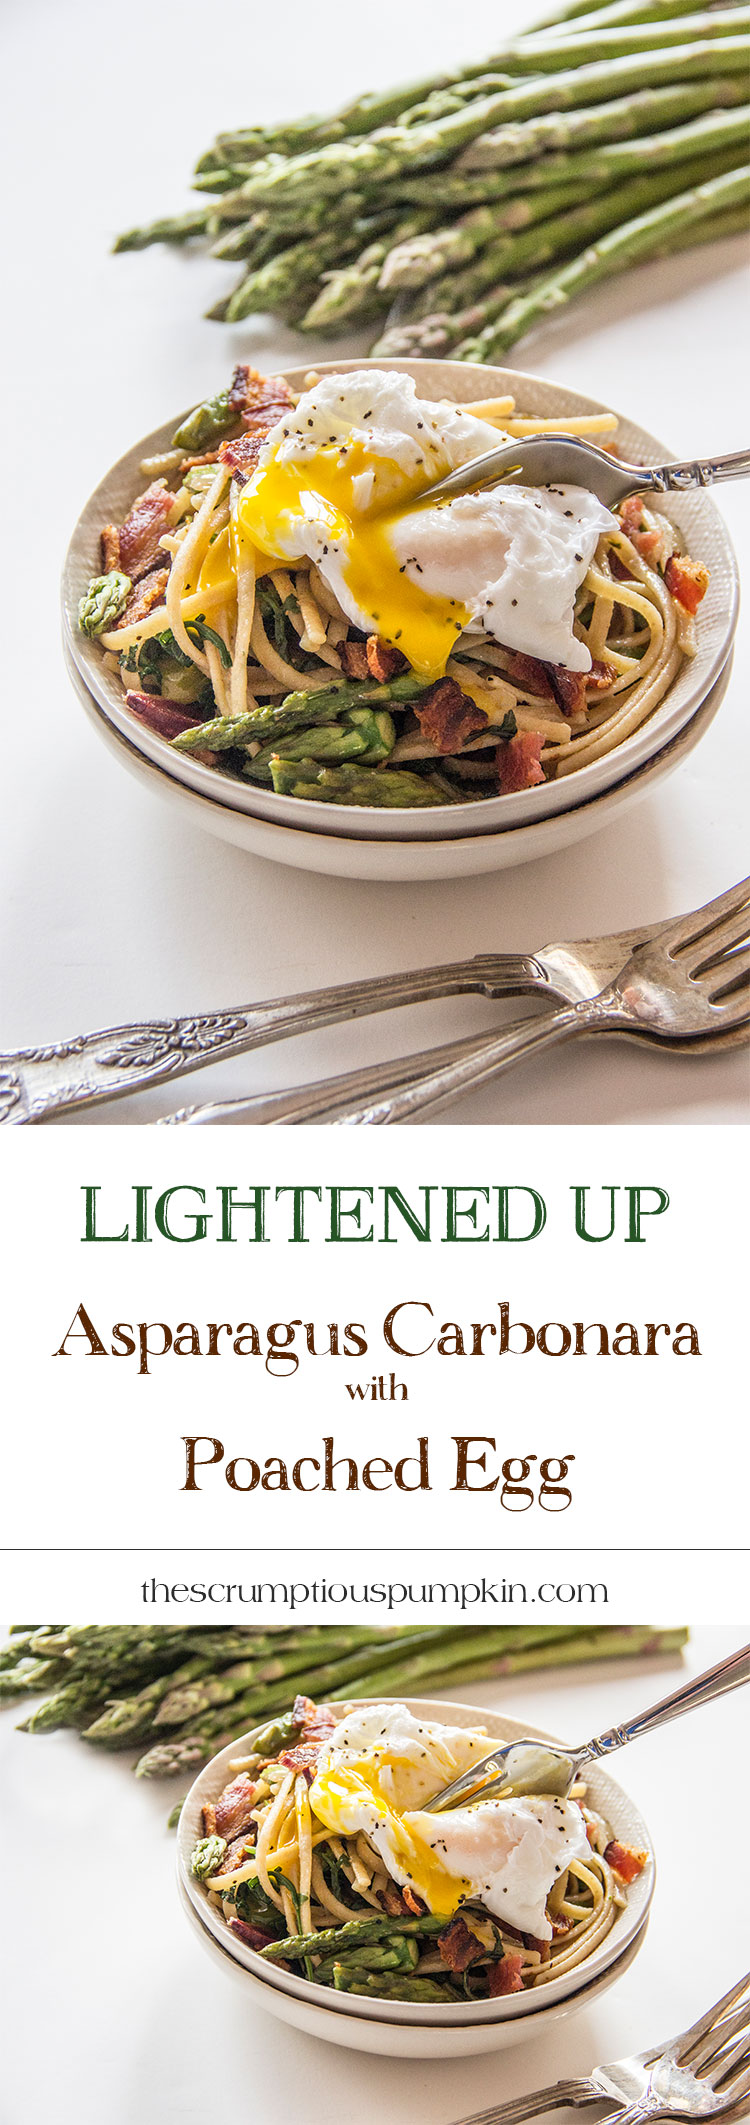 Lightened-Up-Asparagus-Carbonara-with-Poached-Egg